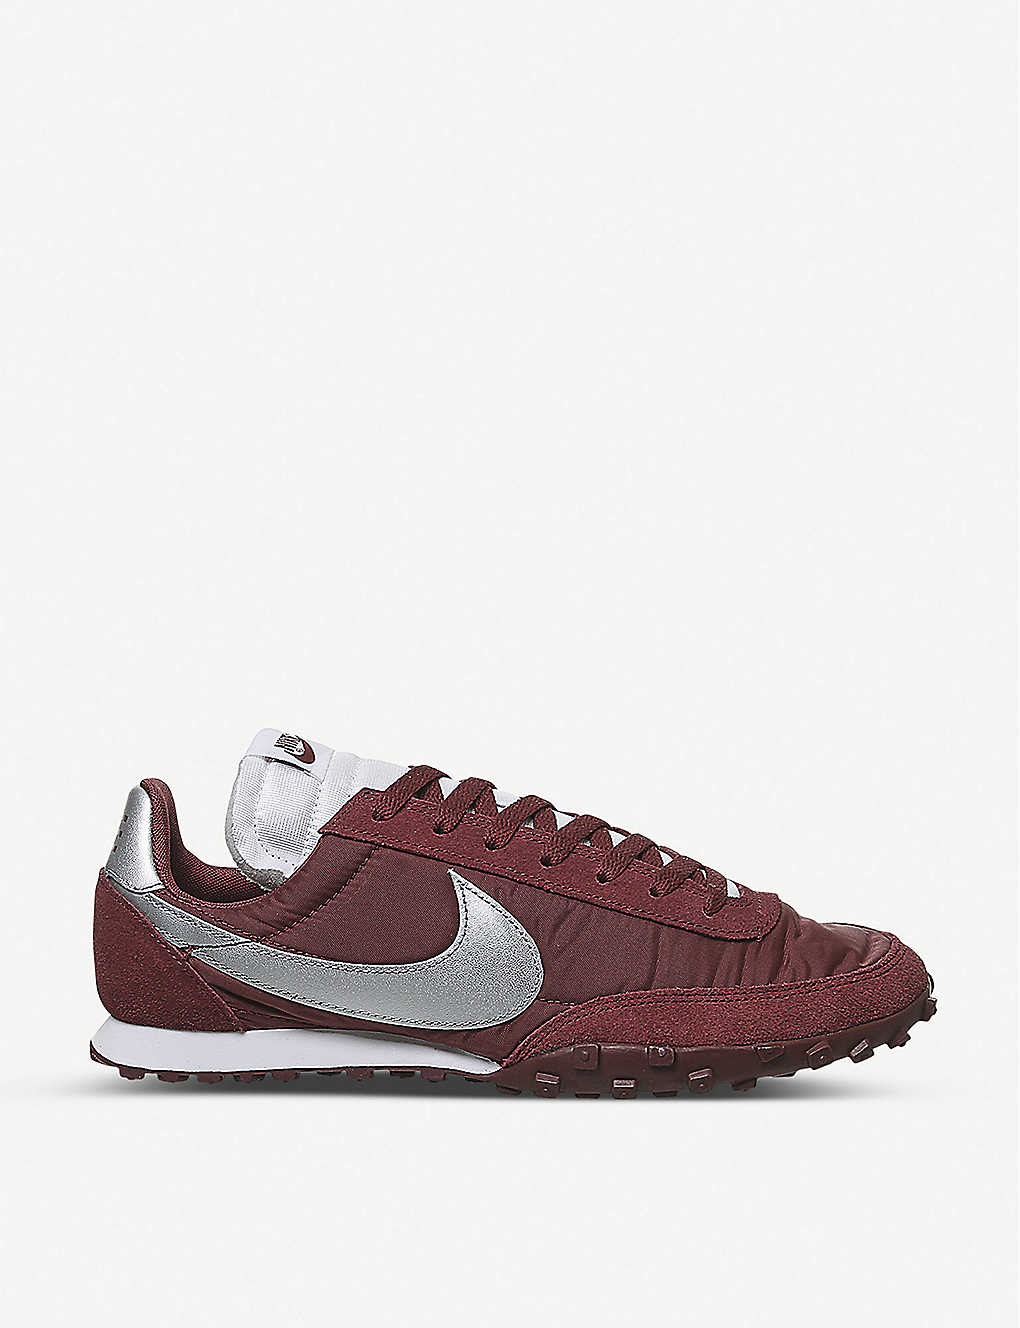 NIKE: Waffle Racer nylon and suede trainers